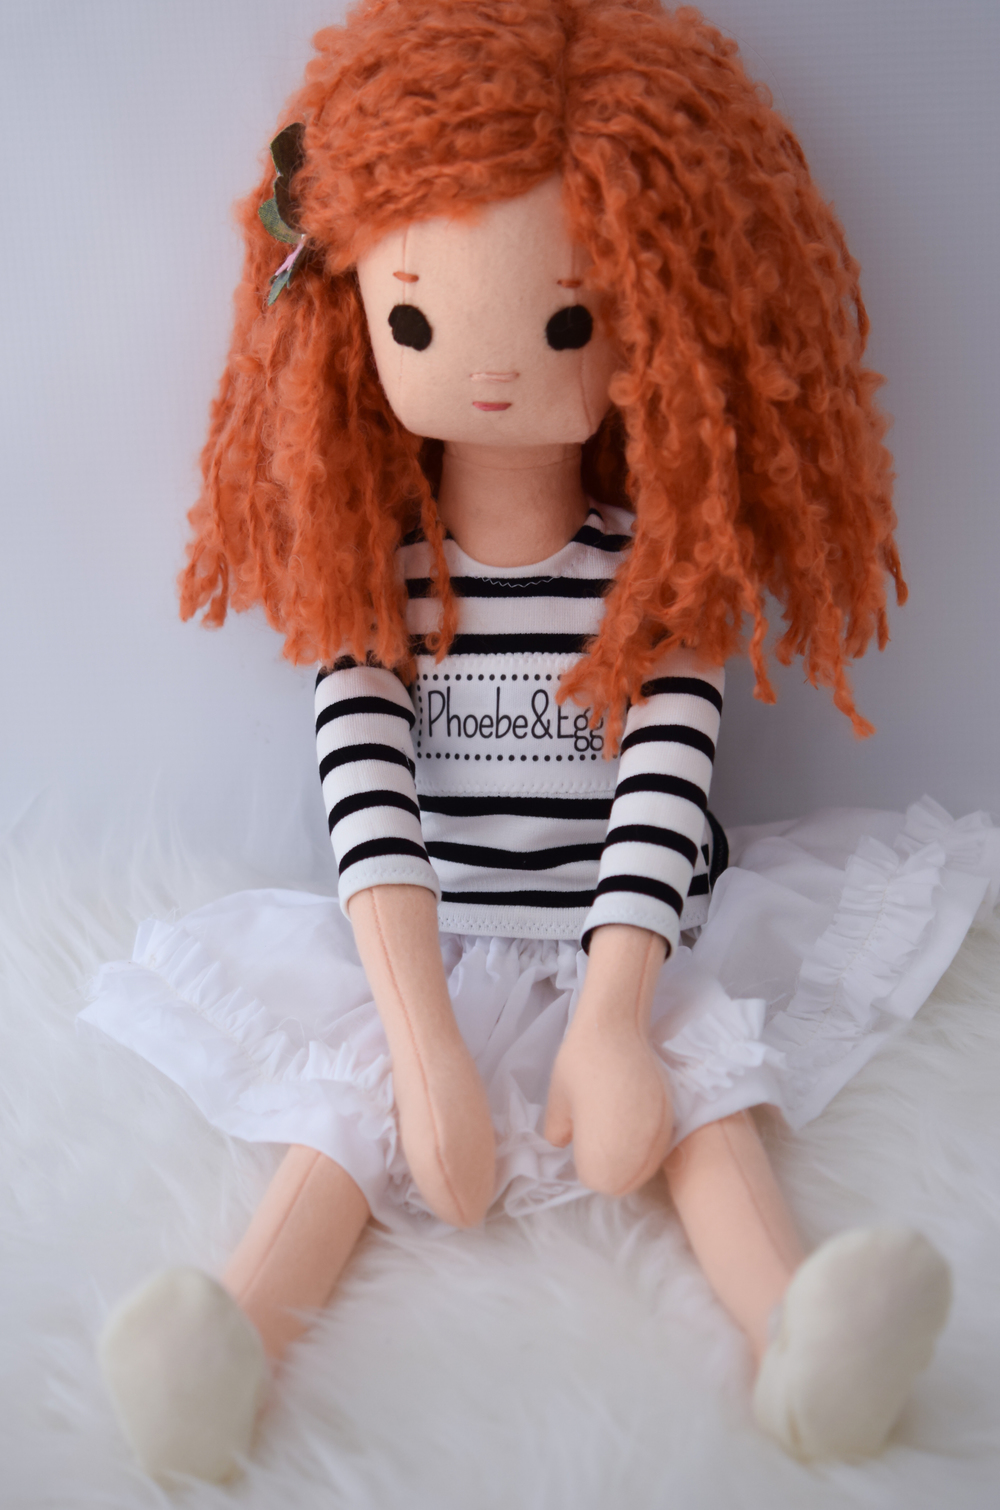 New Phoebe&Egg redhead doll